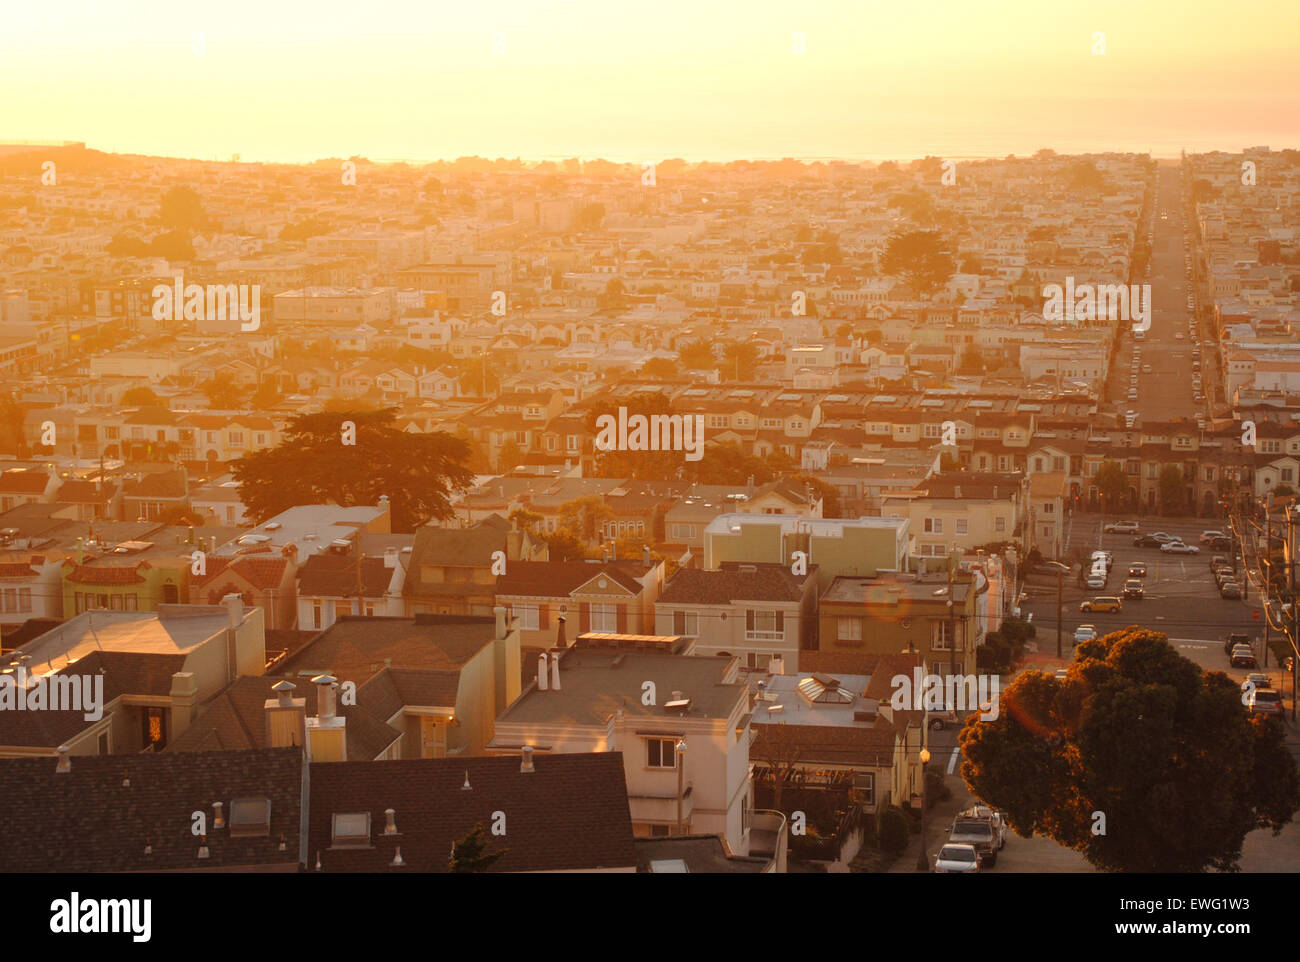 Residential Homes in Cityscape - Stock Image